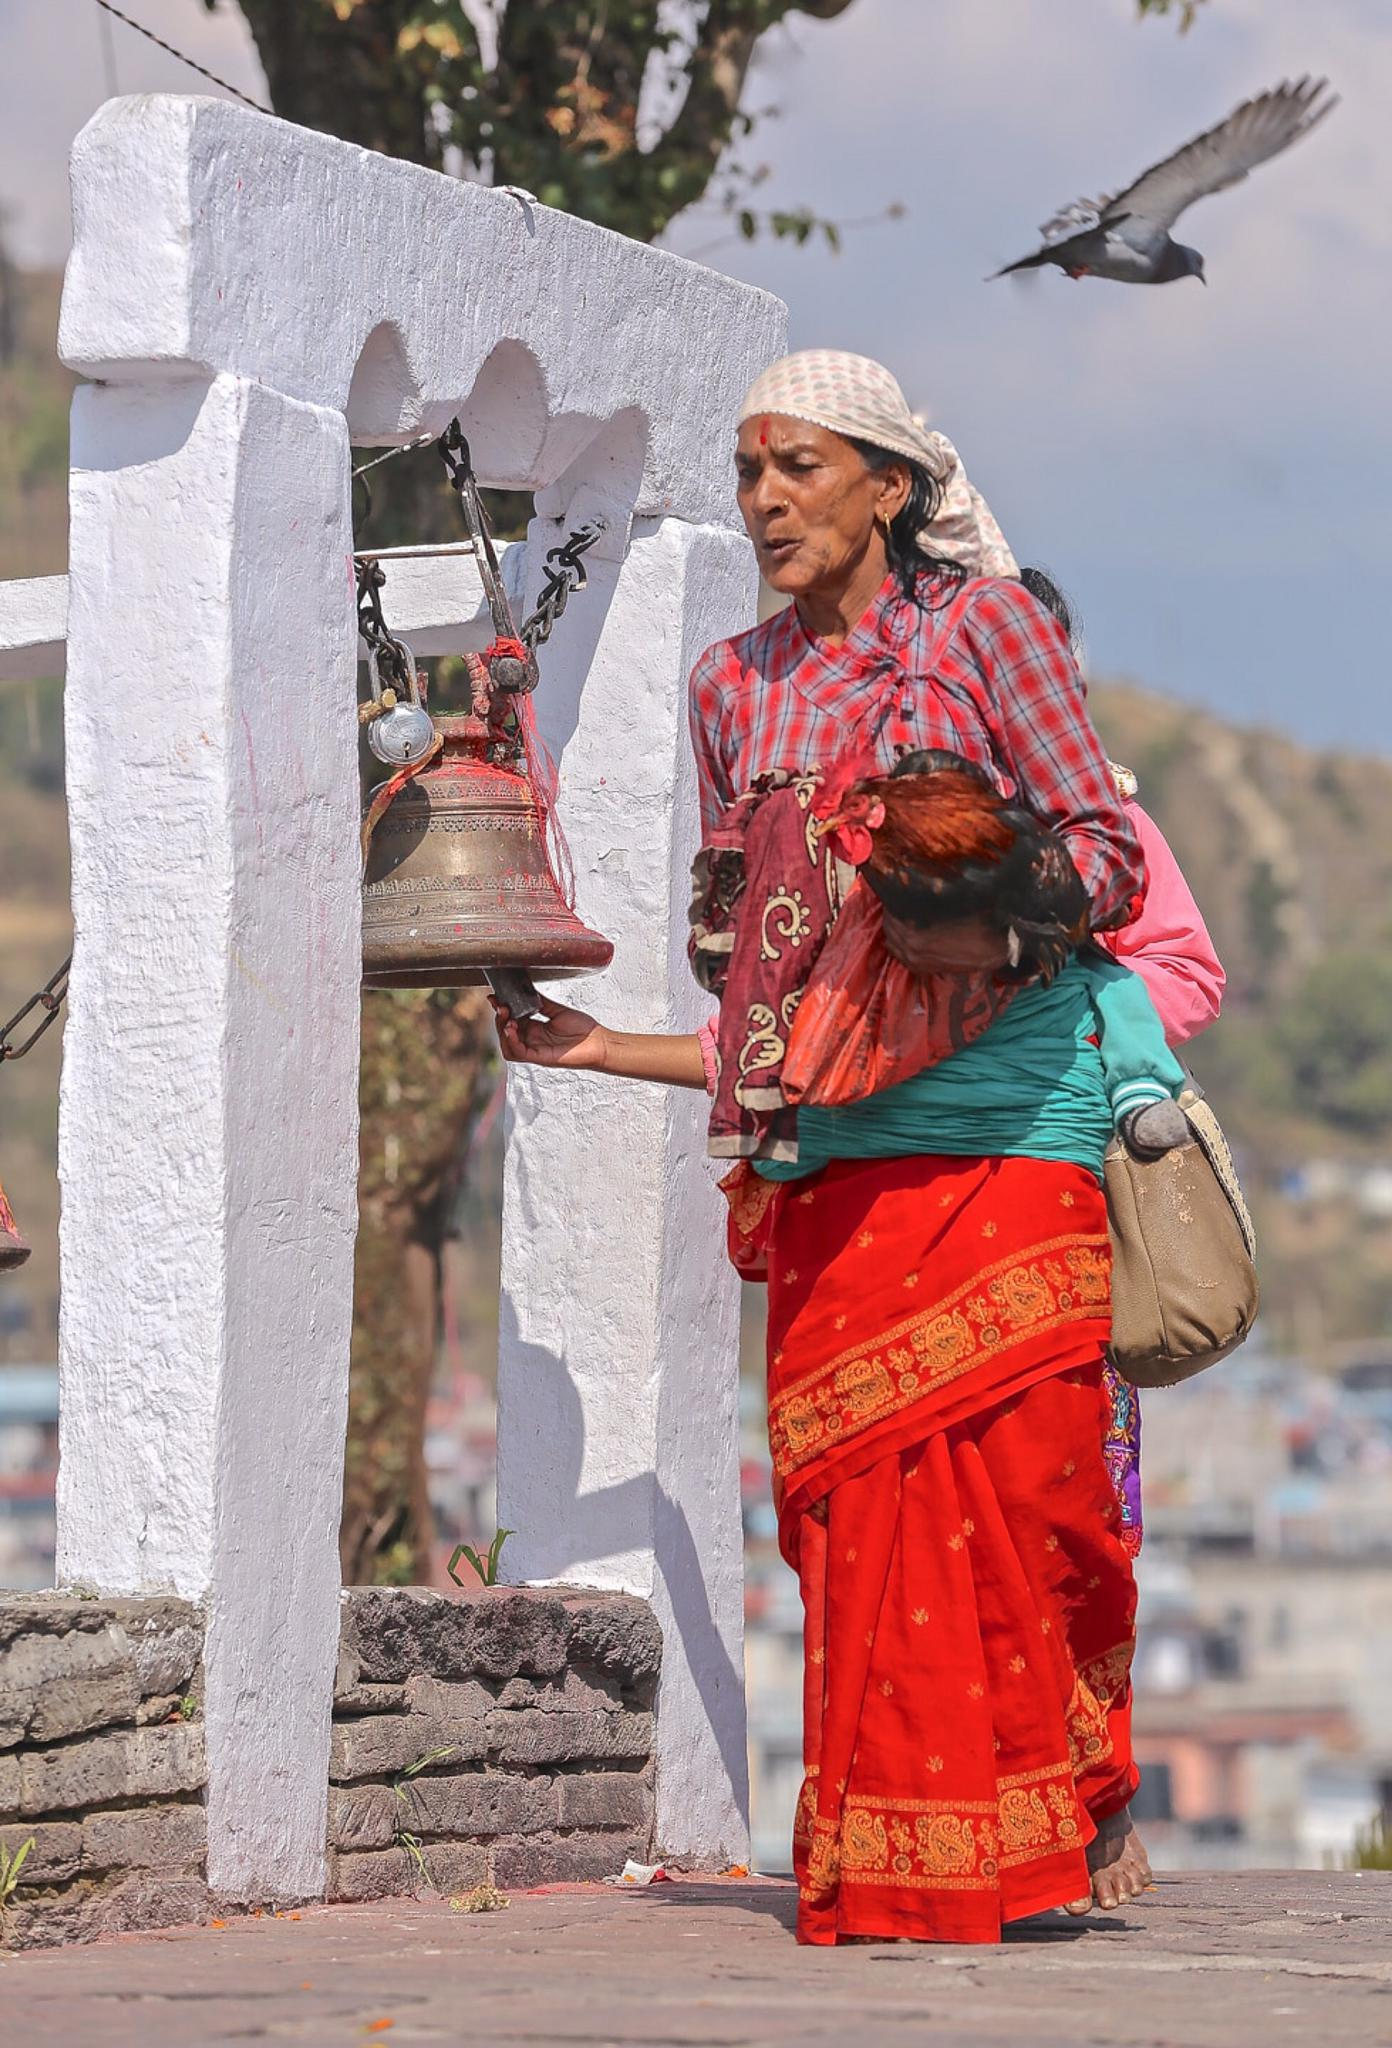 Nepali Worshipper by Totofore